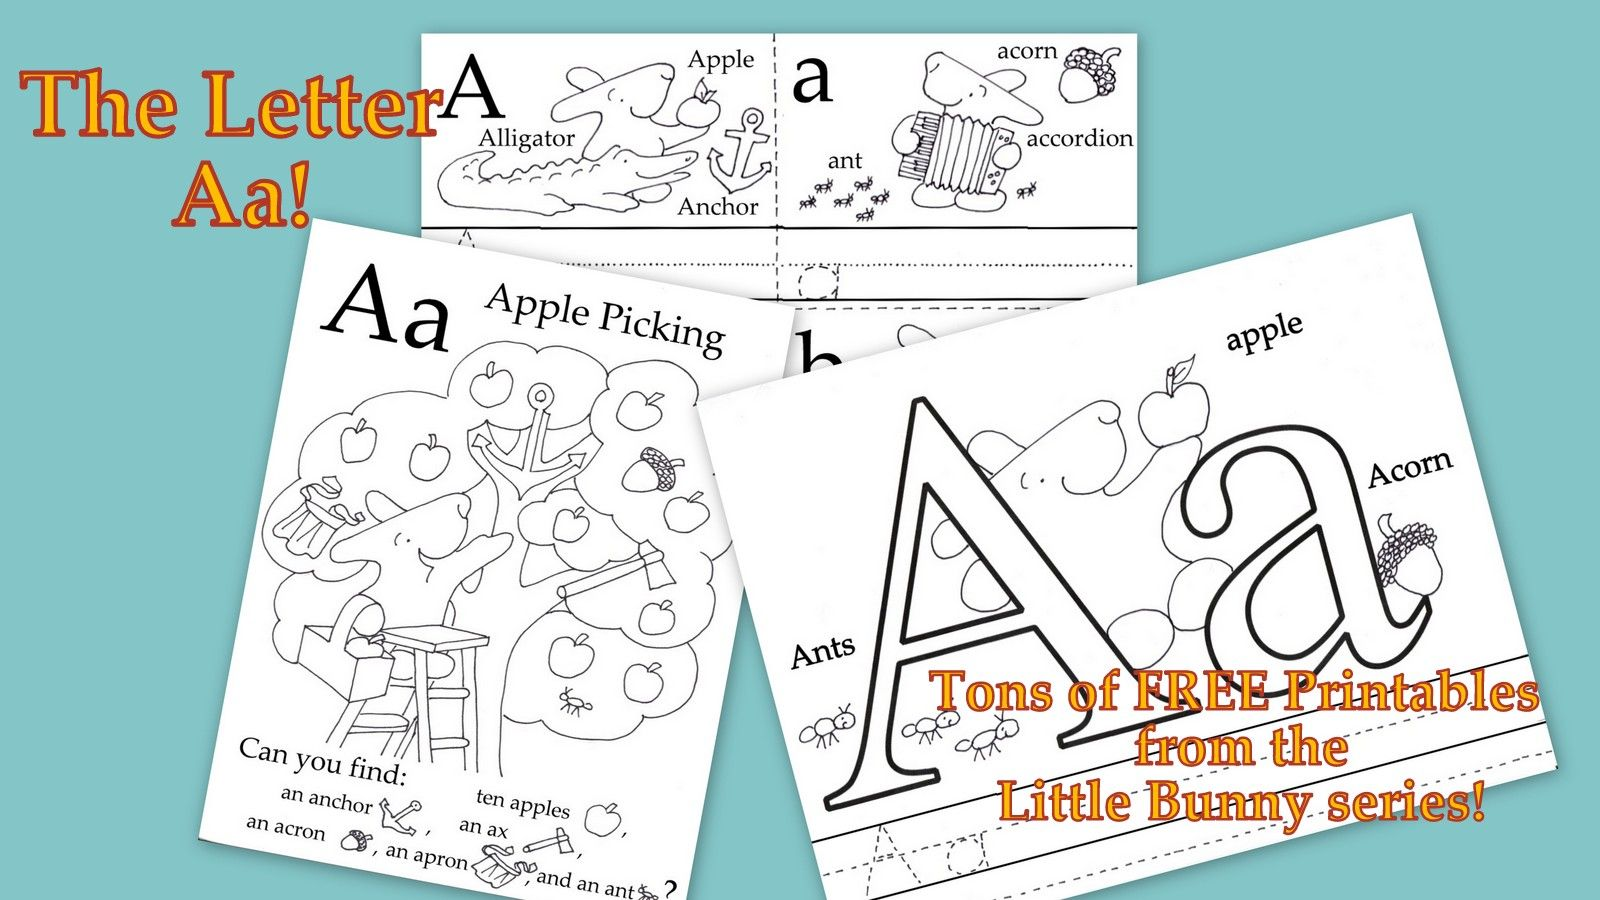 Hundreds Of Free Preschool Printables And Ebooks At Http Www Littlebunnyseries Com Free Preschool Printables Free Preschool First Day Of School Activities [ 900 x 1600 Pixel ]